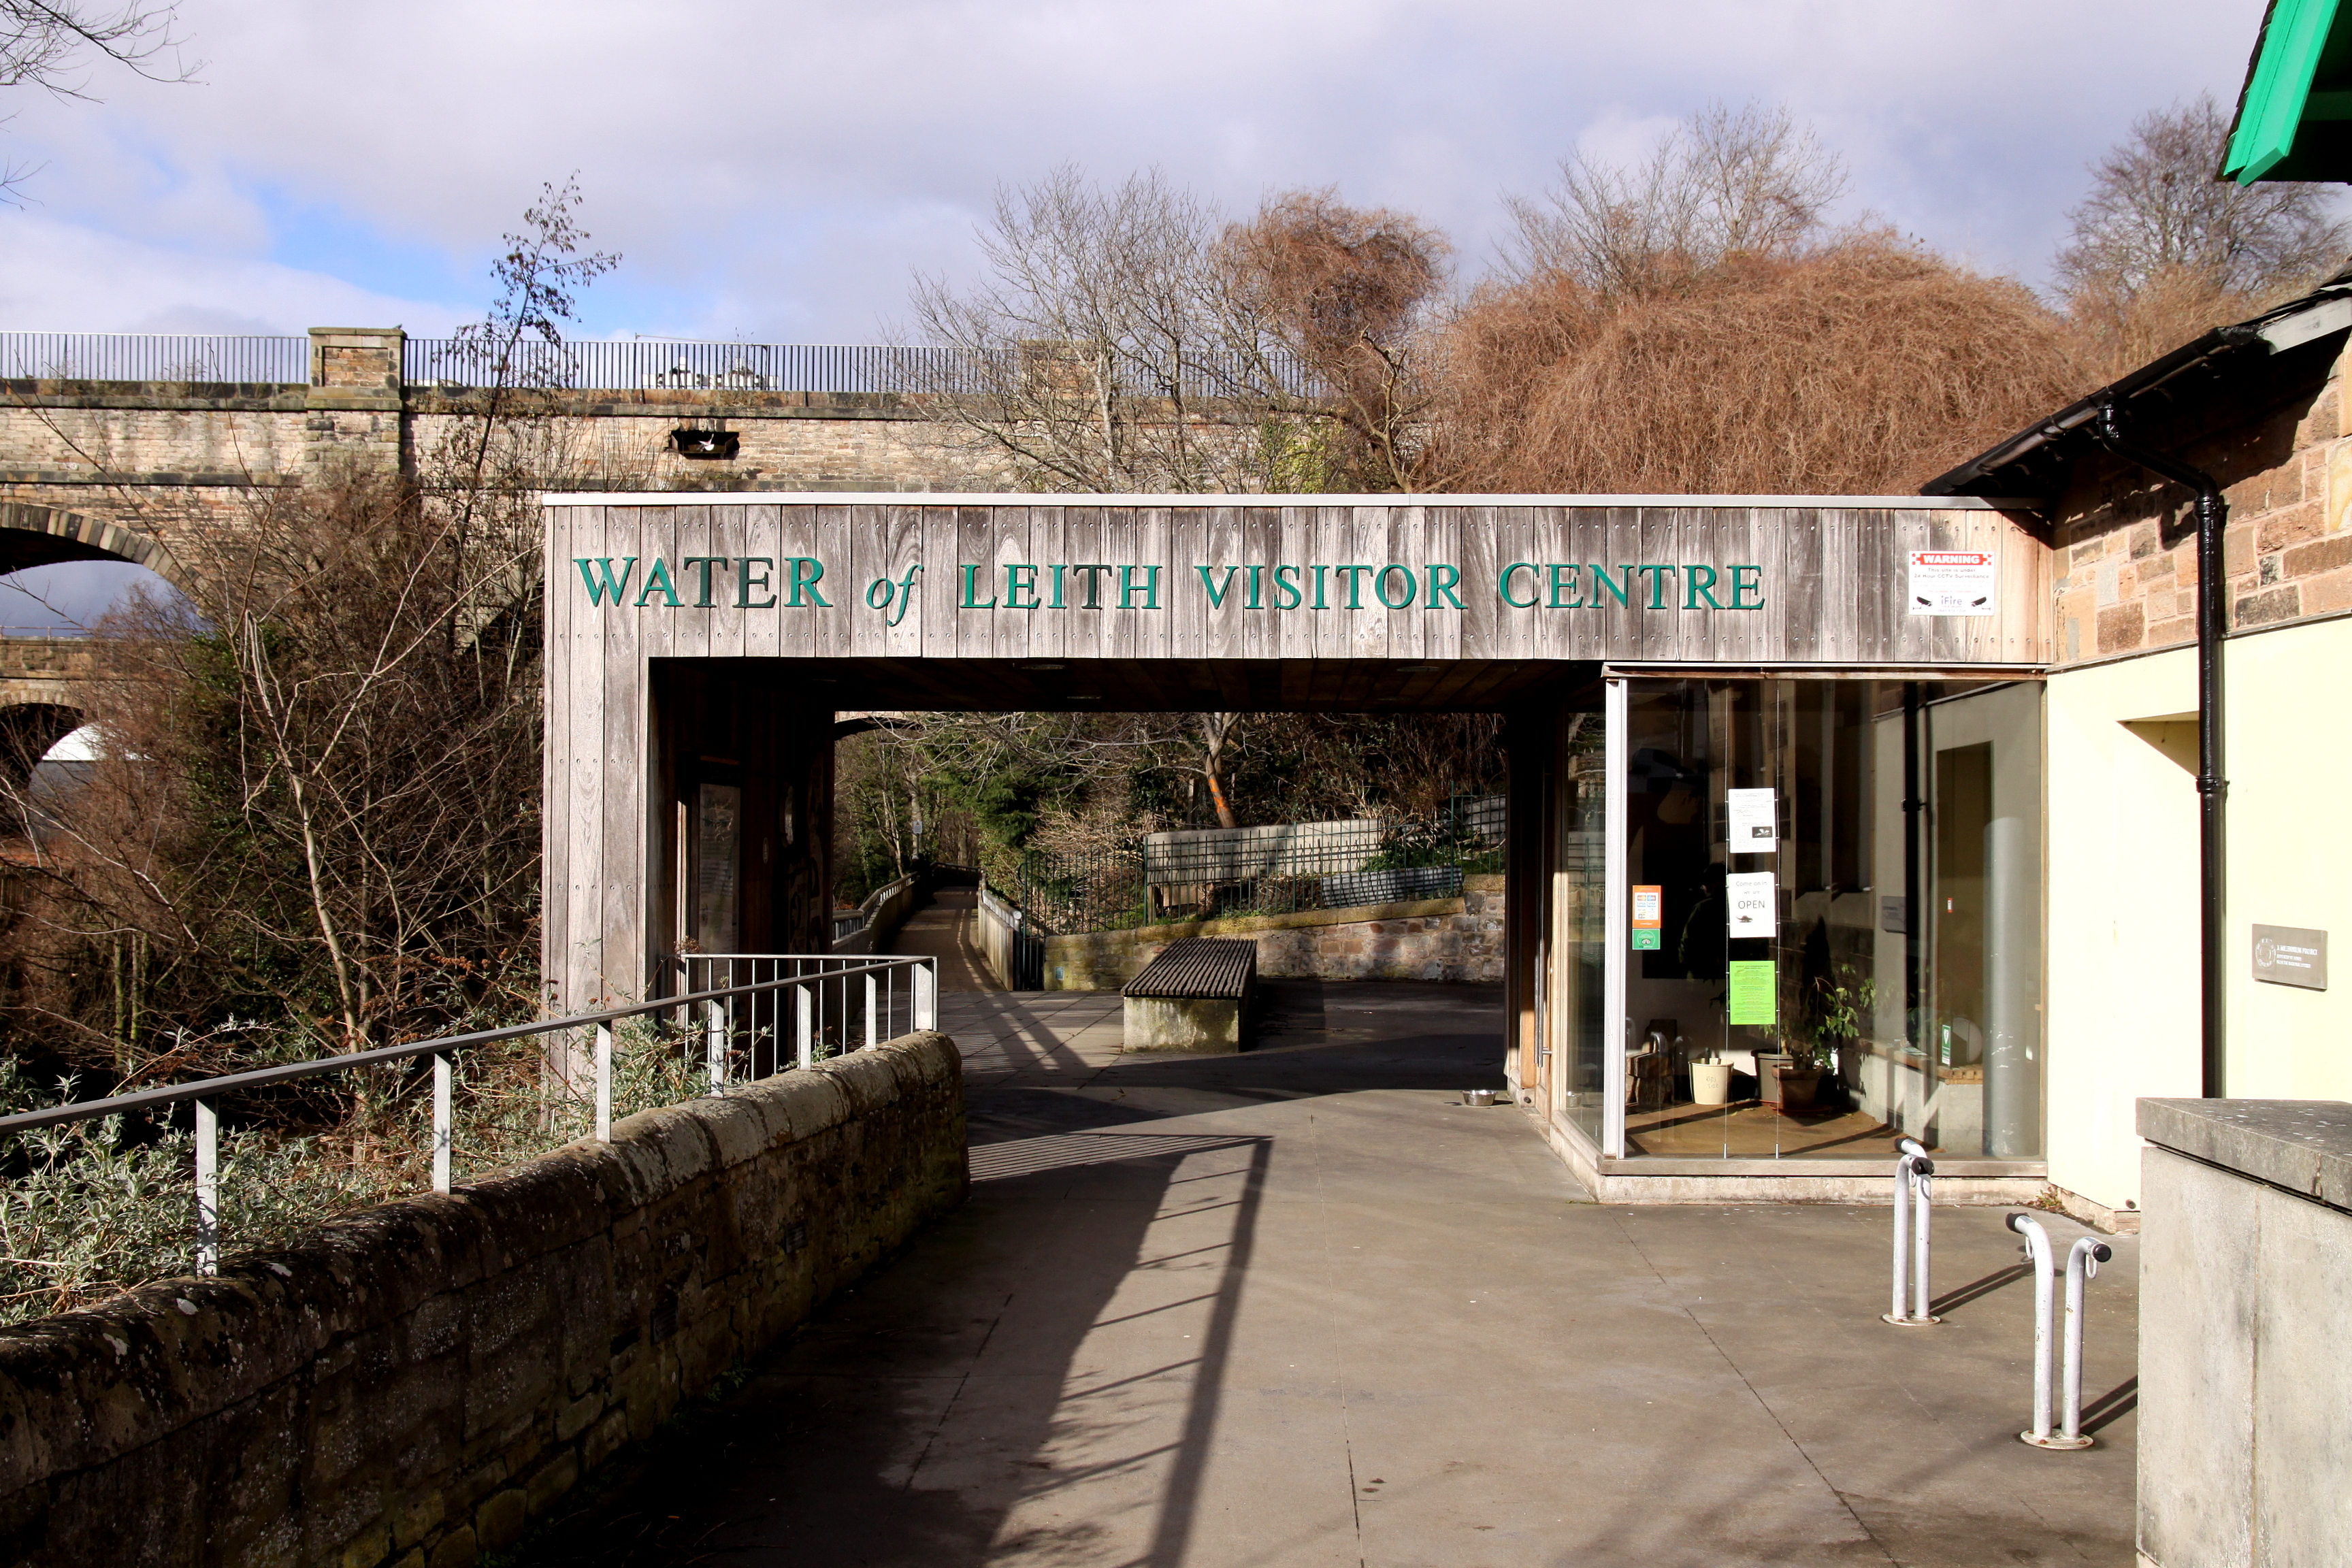 water of leith visitor centre